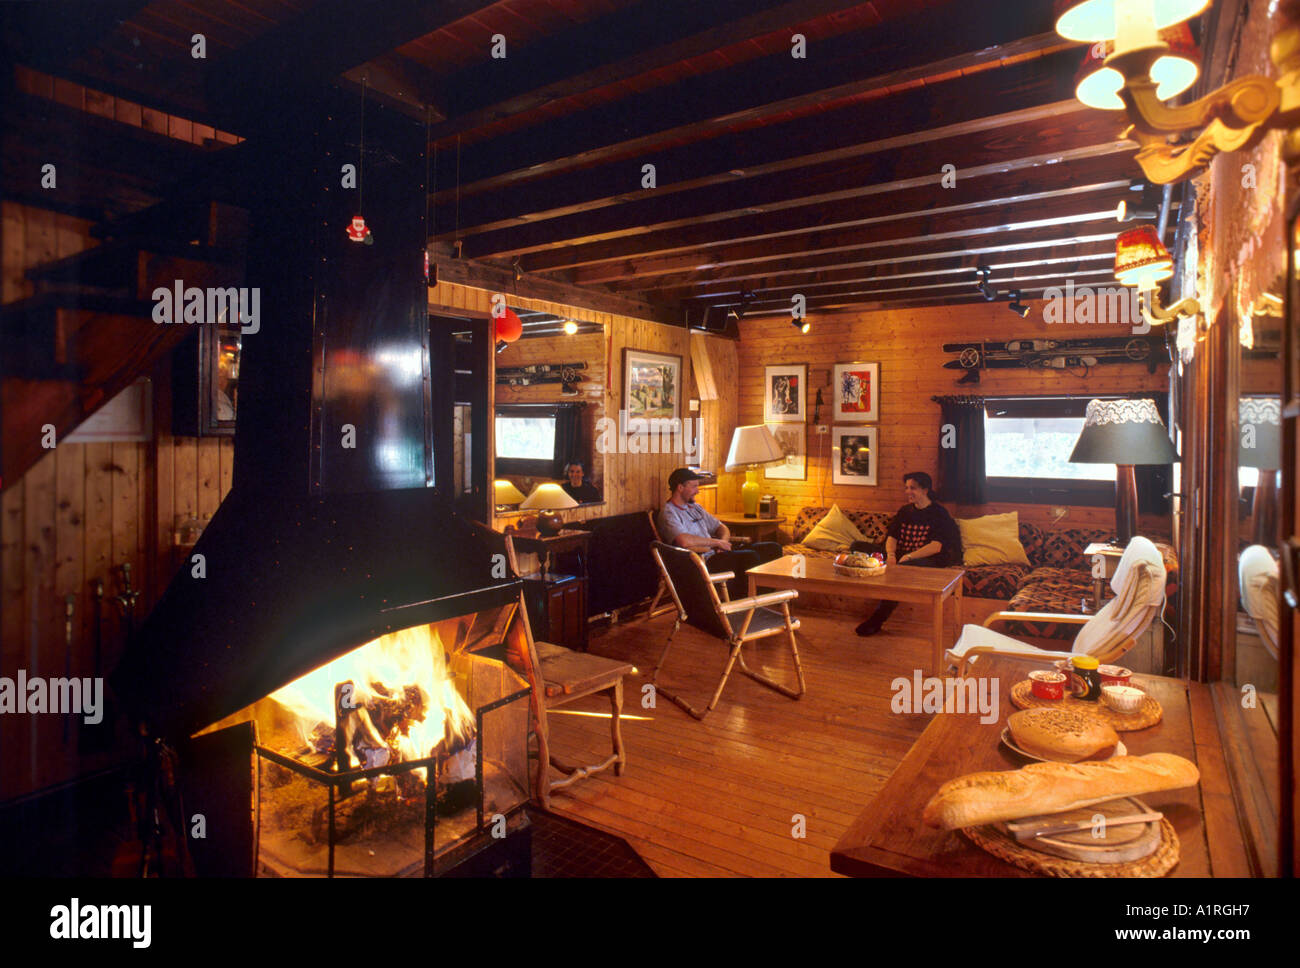 Afternoon tea in a typical chalet, Avoriaz, Savoie, French Alps, France - Stock Image